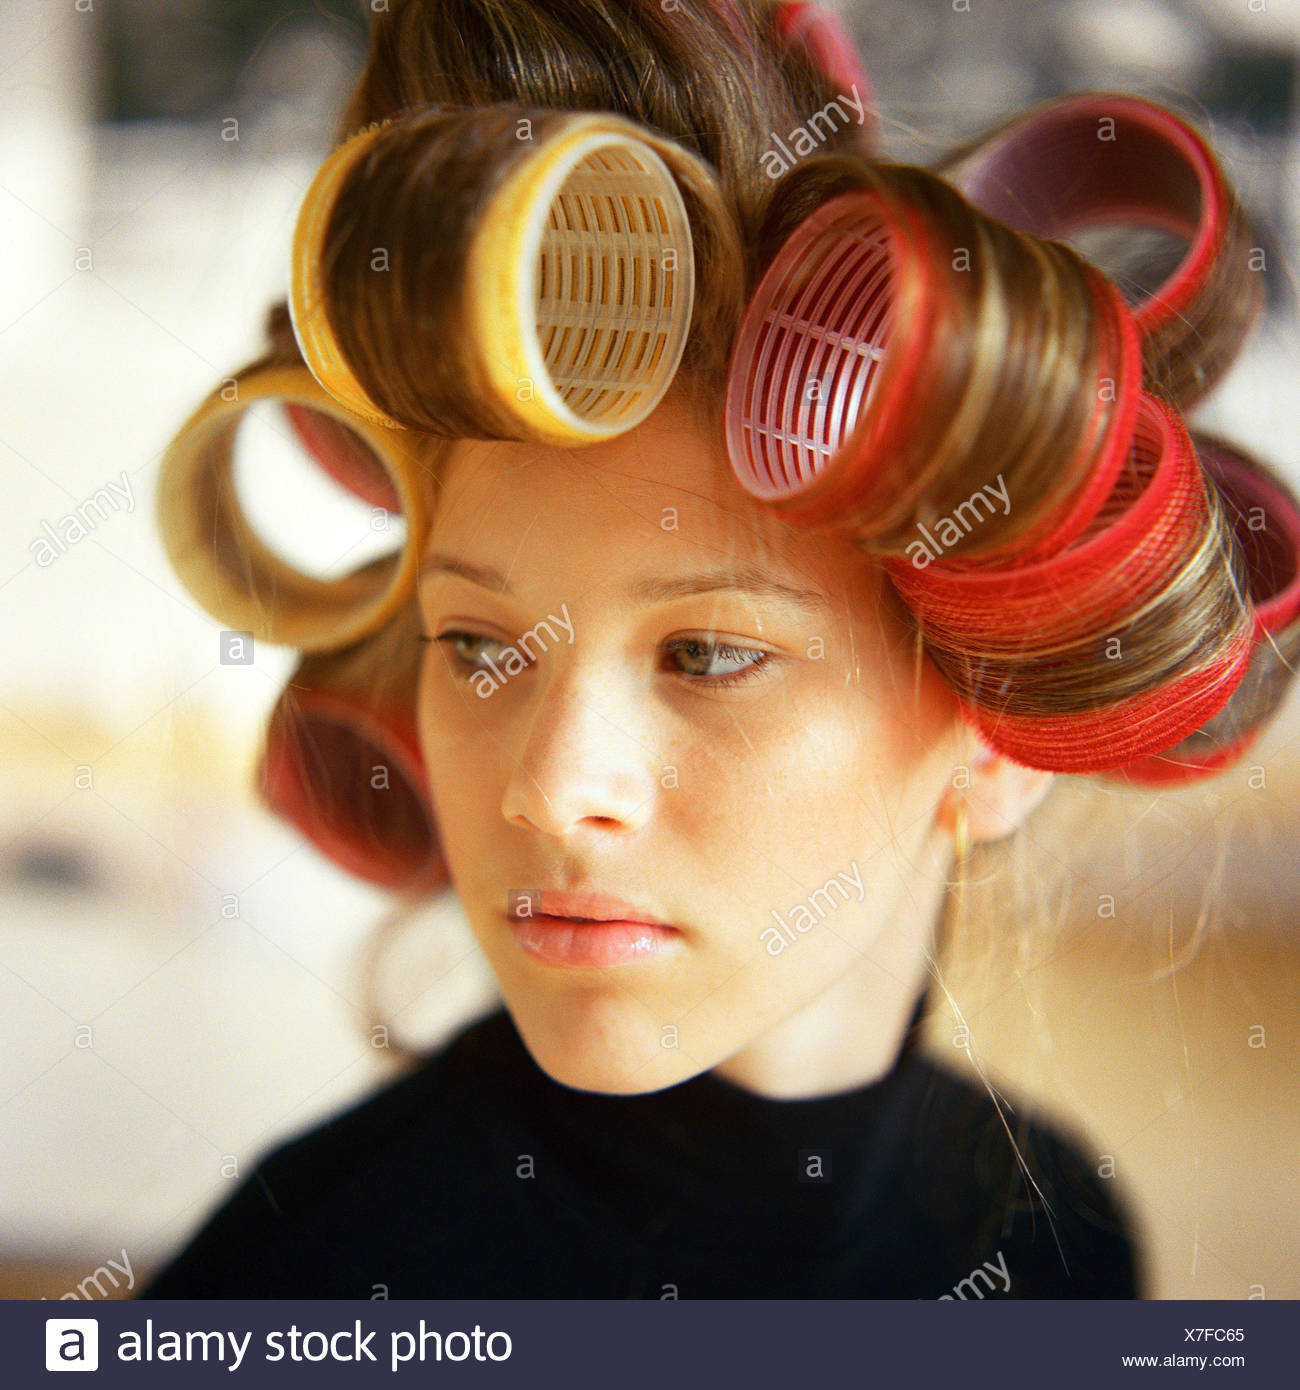 Young woman with rollers in hair - Stock Image